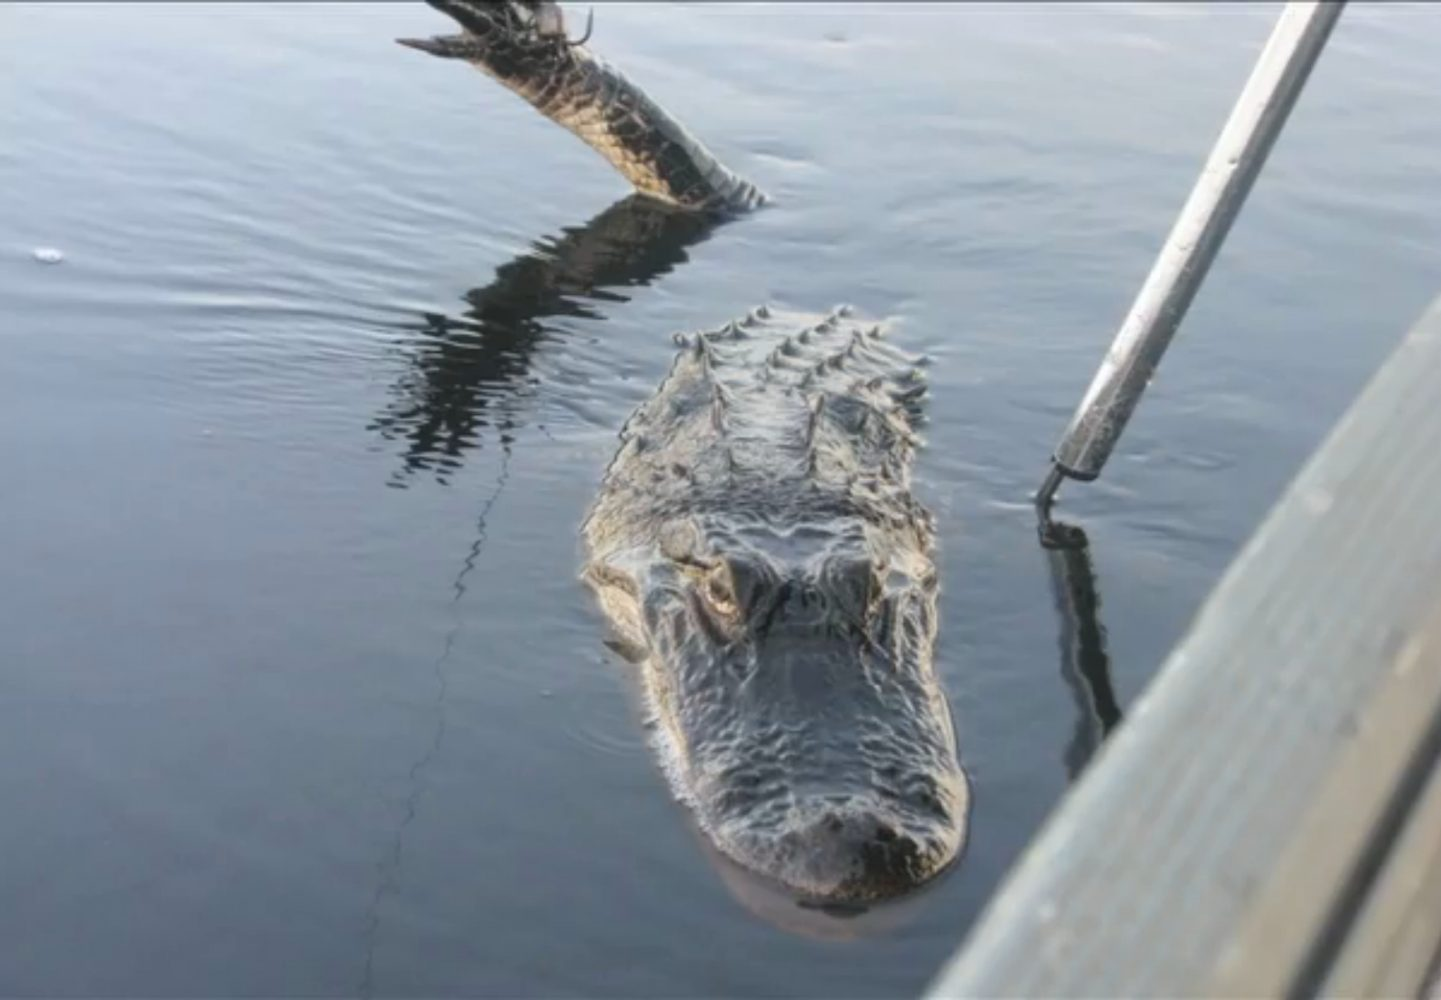 This is the face of the alligator that has been caught.  To get the gator to remain still, the hunters exhausted it.